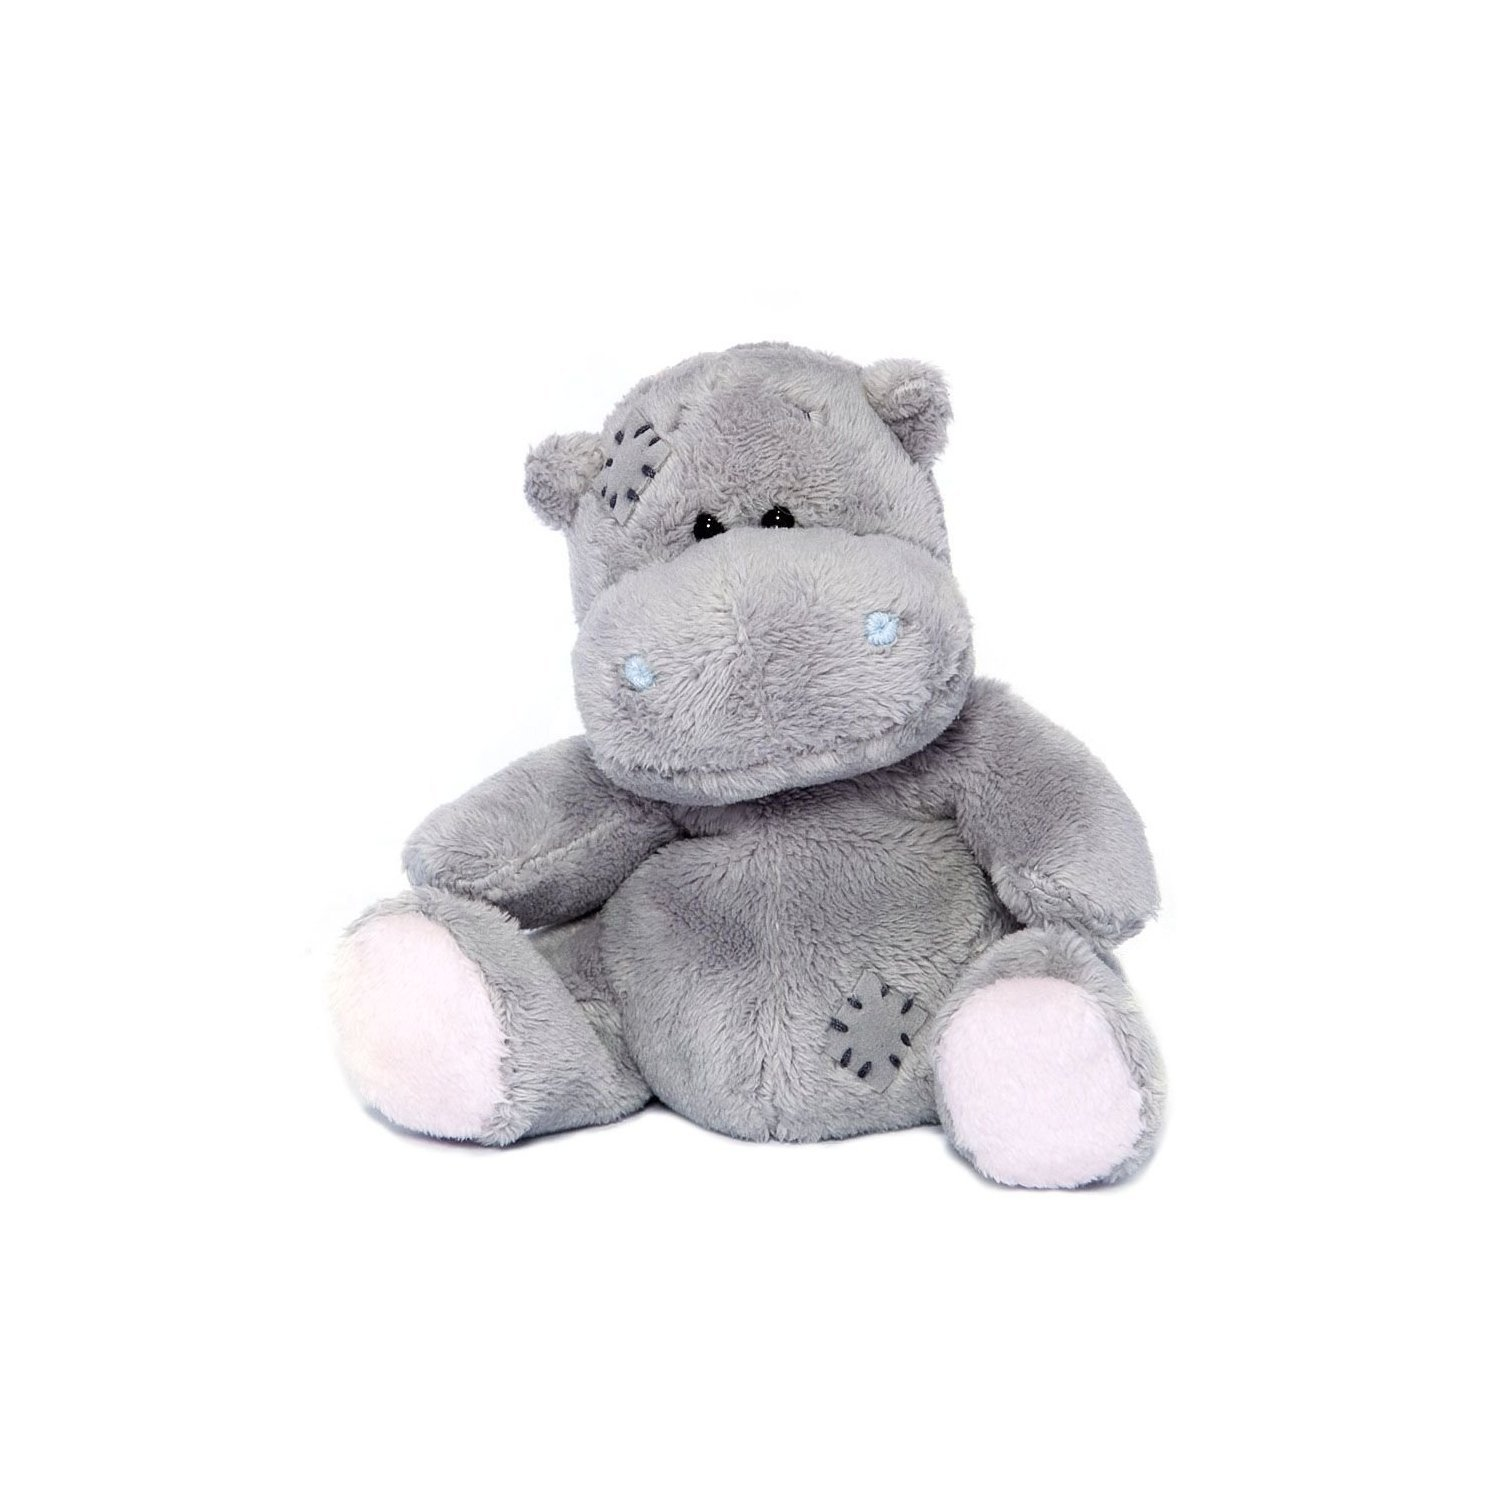 Me to You - My Blue Nose Friends Thomas the Hippo, 10cm (4 inch) SOFT PLUSH TOY the pygmy hippo story